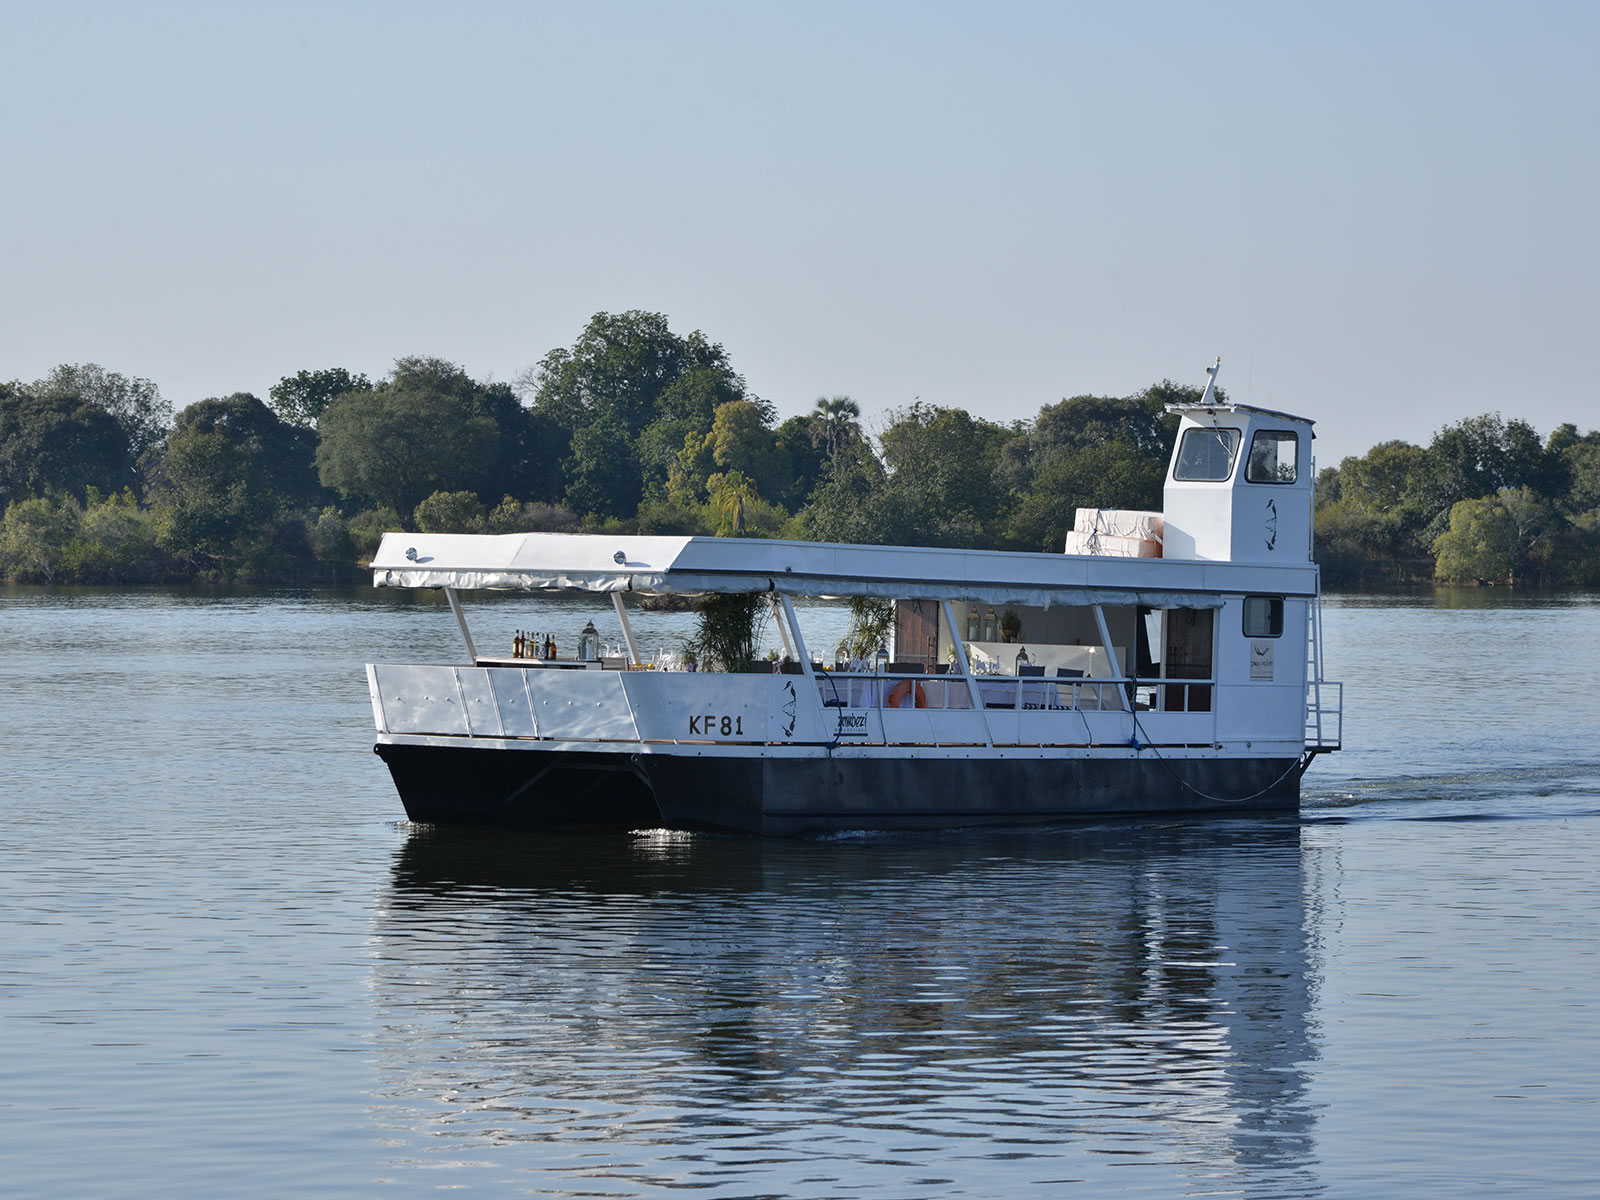 The Zambezi Reflections boat for dinner cruises on the Zambezi River in Victoria Falls, Zimbabwe